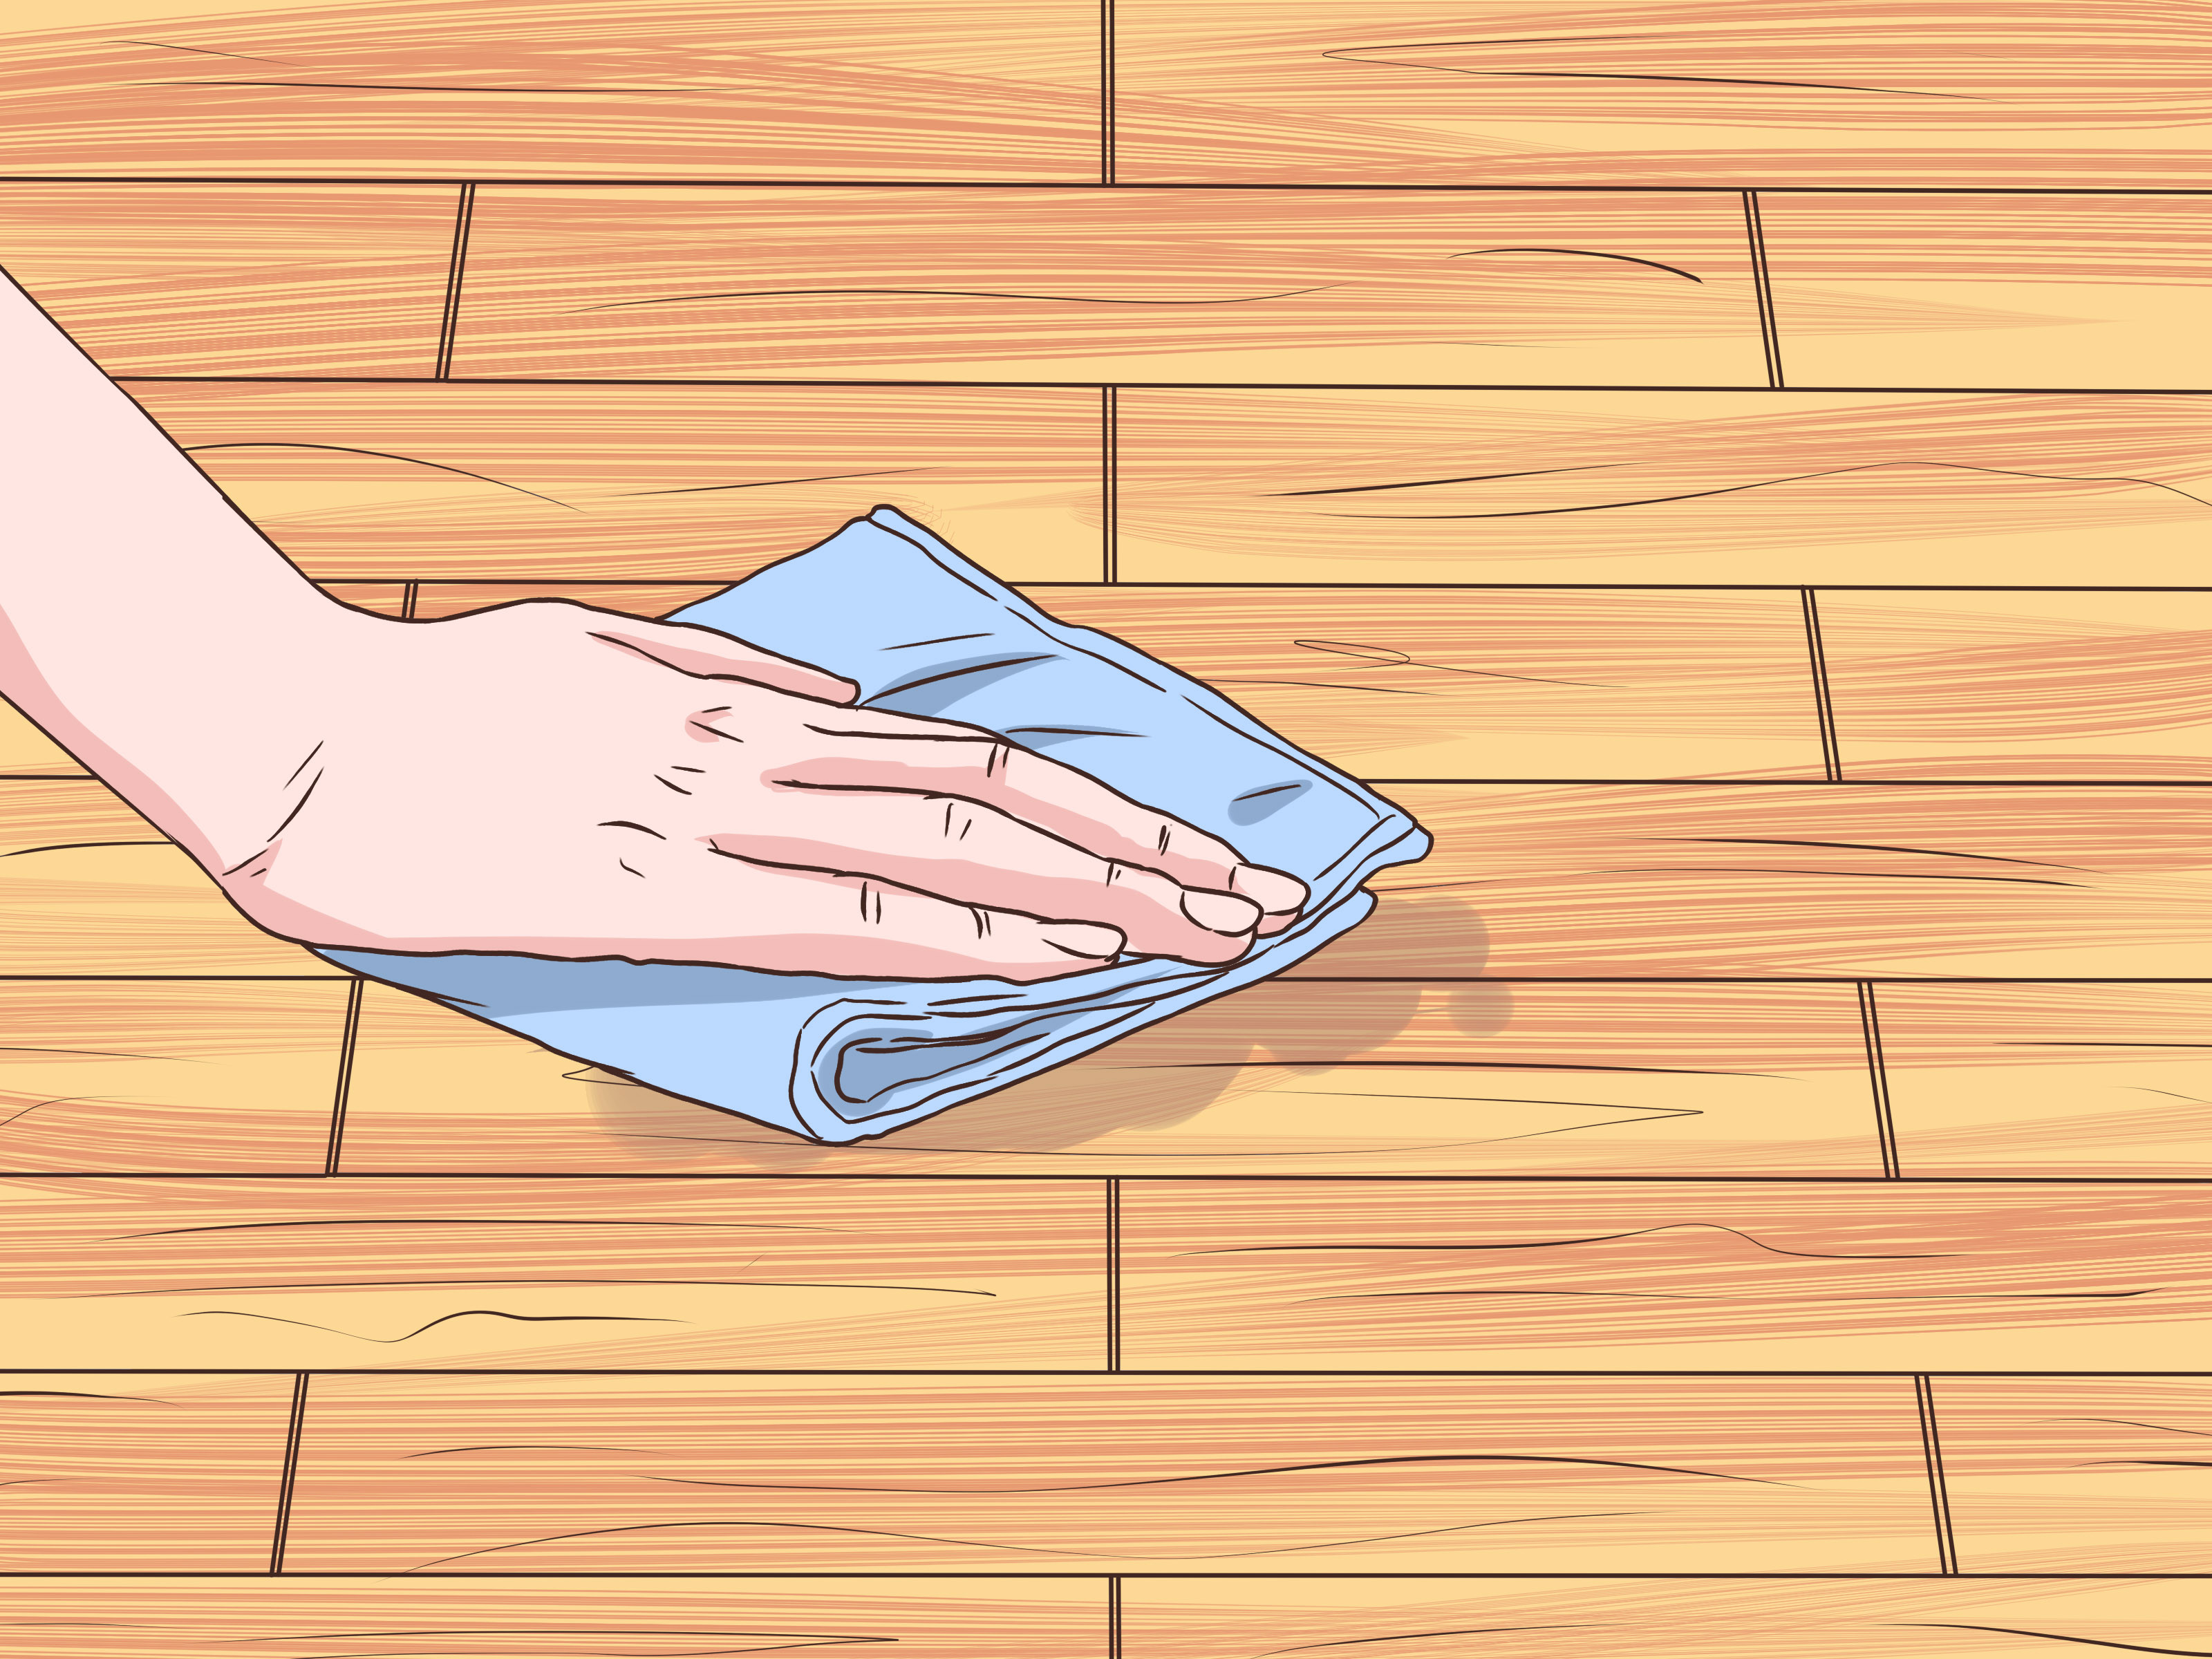 hardwood flooring online shopping of how to clean sticky hardwood floors 9 steps with pictures intended for clean sticky hardwood floors step 9